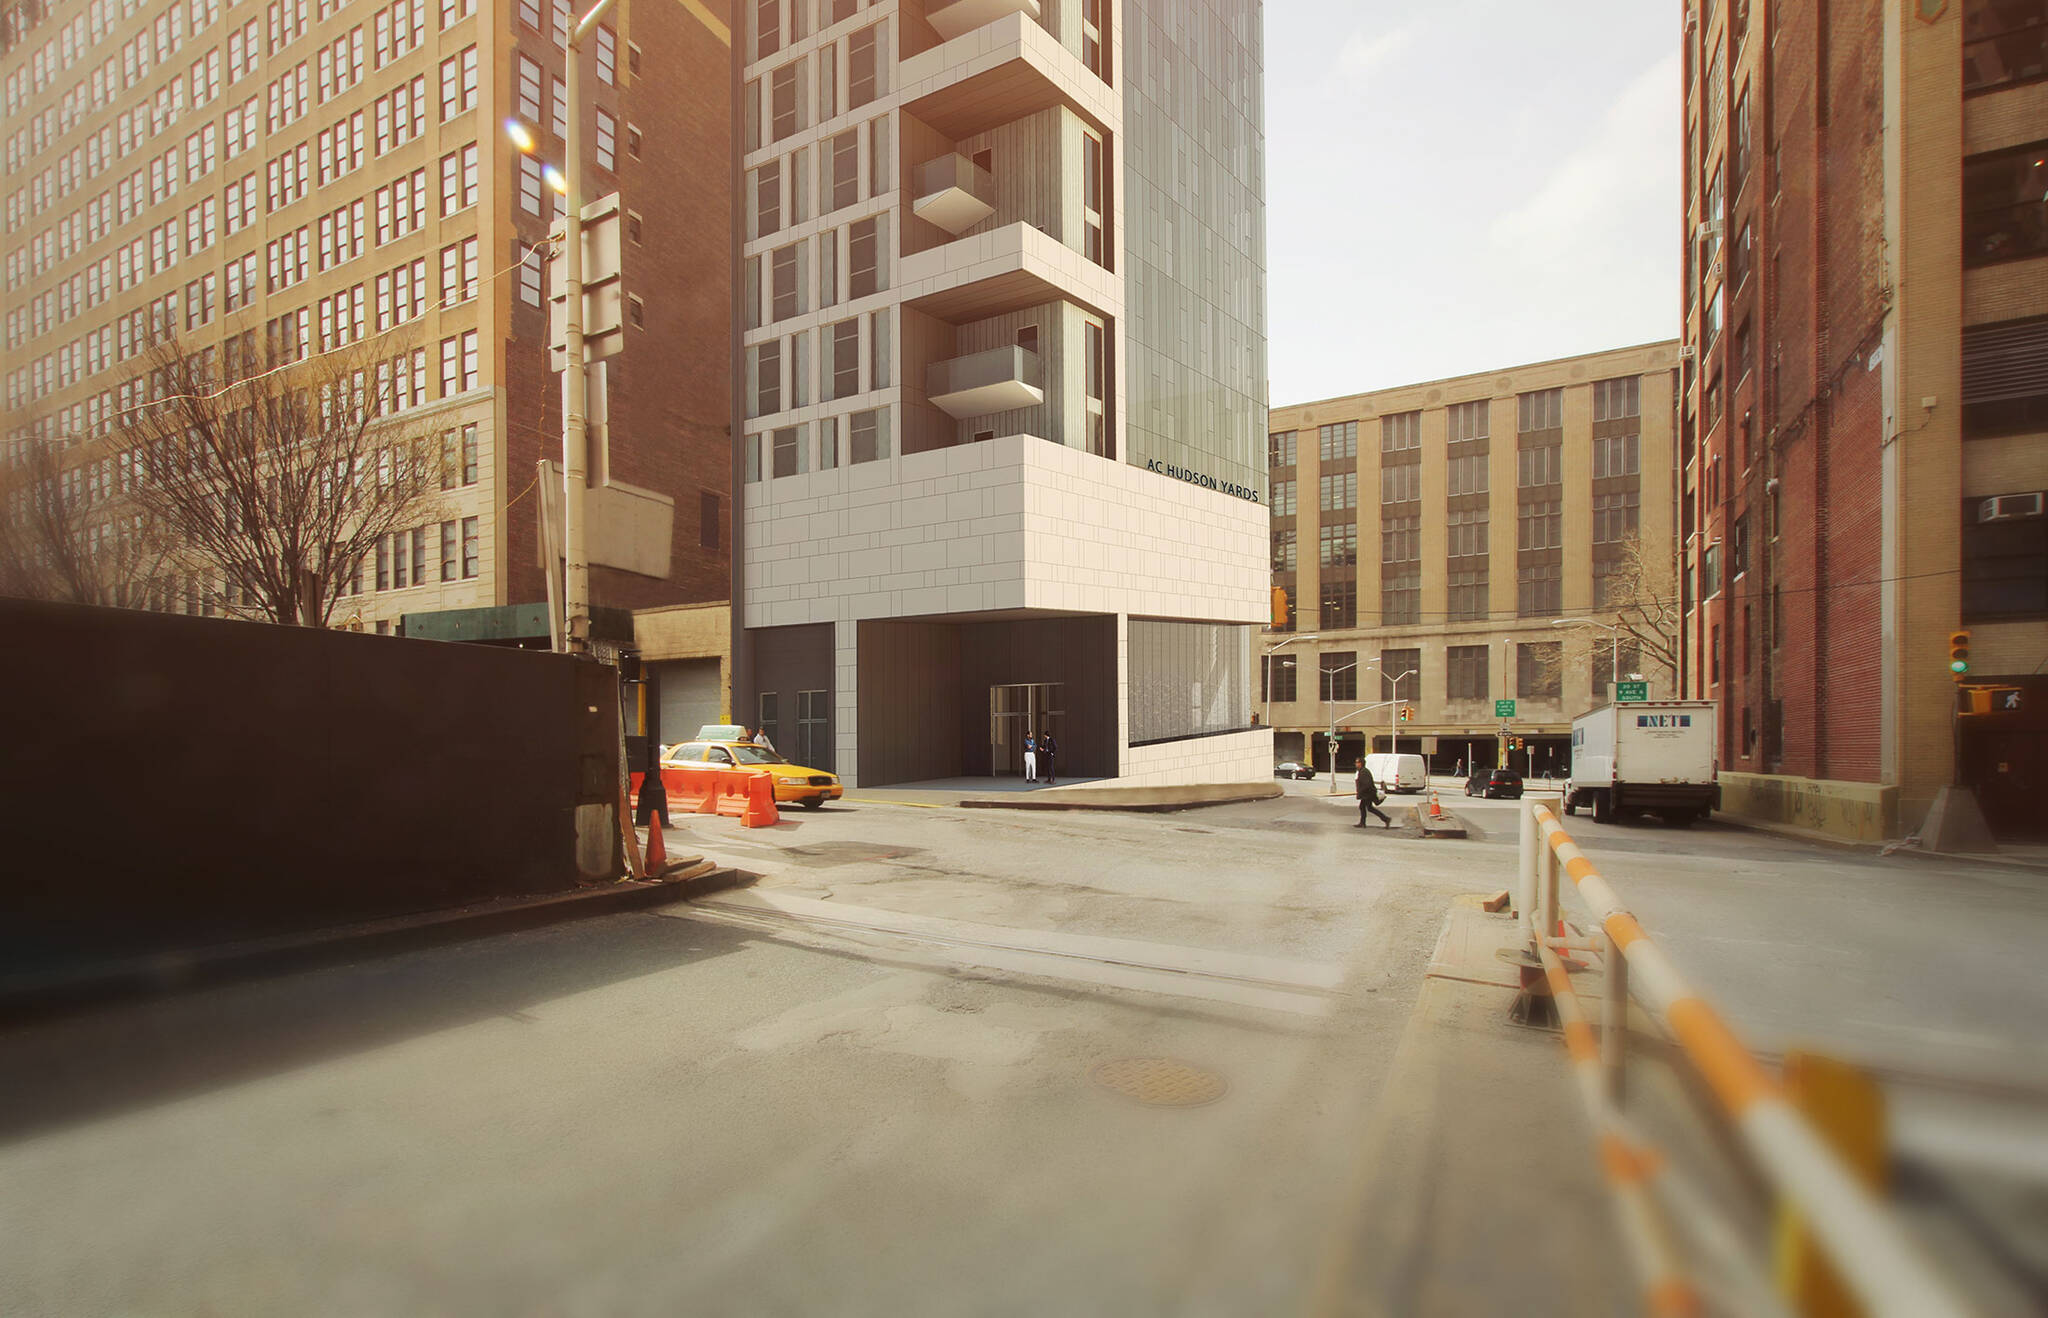 Architectural rendering of the Podium of the Hudson Yards Autograph Hotel project by Marriott from across the street, a modular hotel tower located at 432 West 31st Street in Hudson Yards, New York City designed by the architecture studio Danny Forster & Architecture